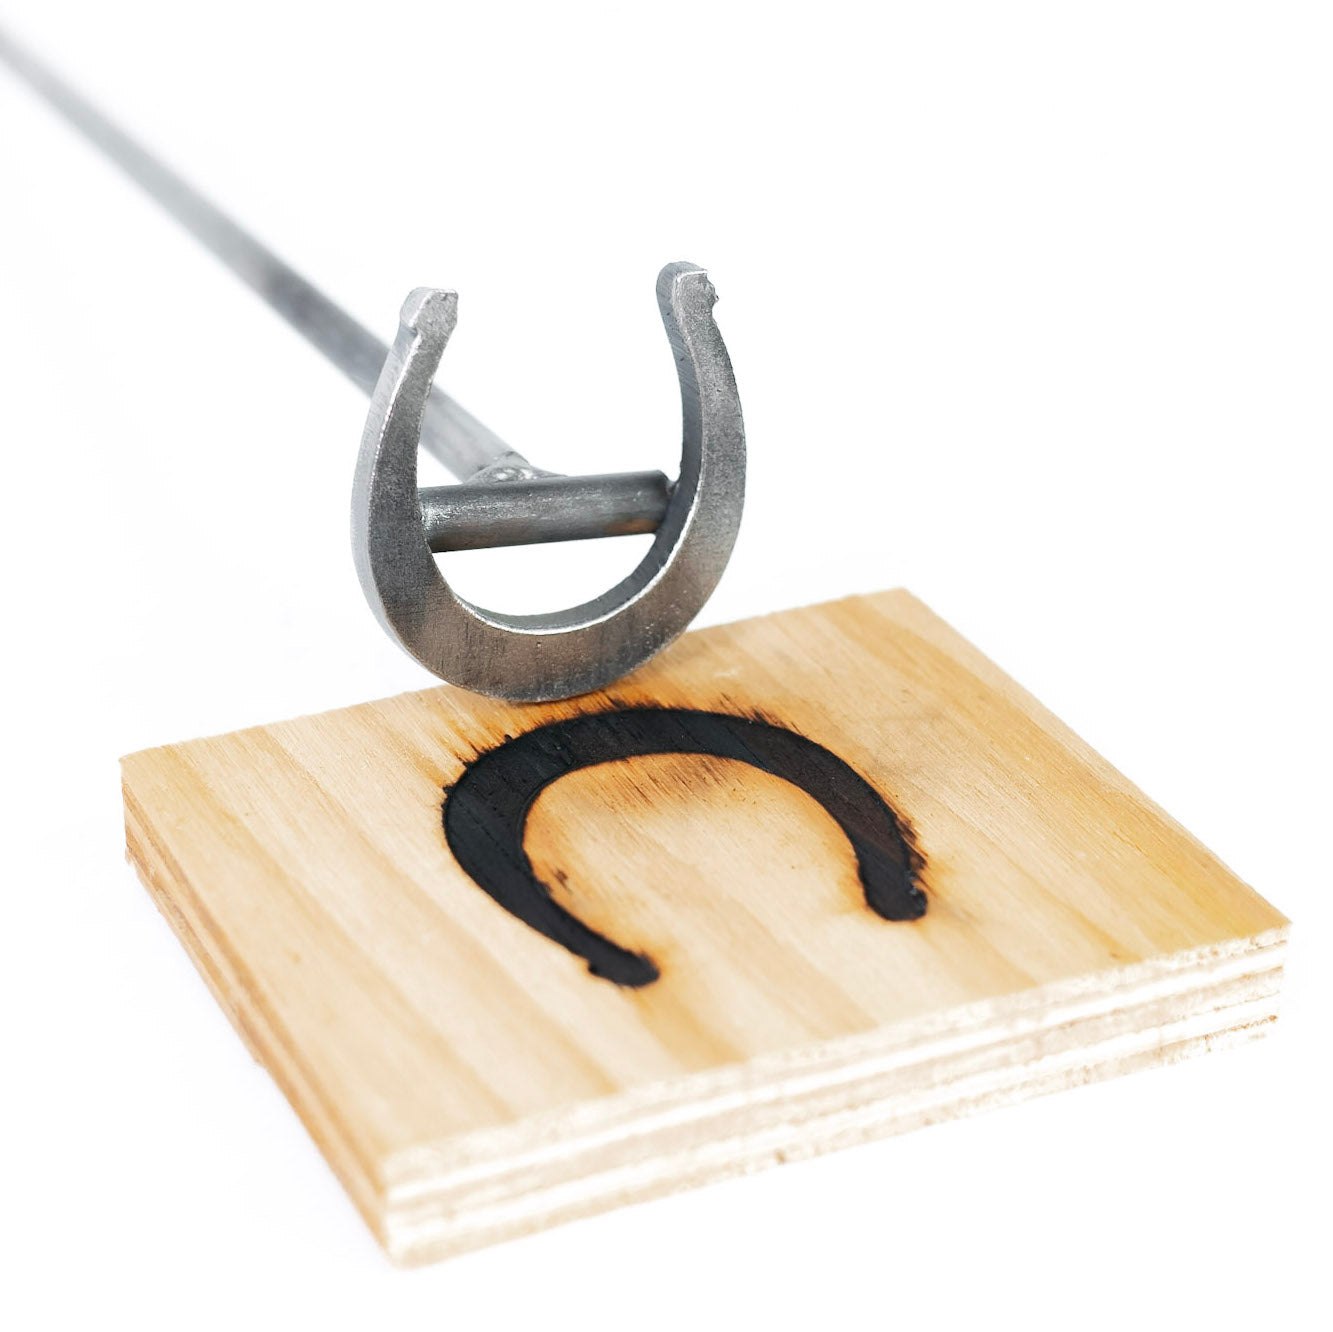 "Horseshoe Brand - 2.5"" - BBQ, Crafts, Woodworking Projects - The Heritage Forge"